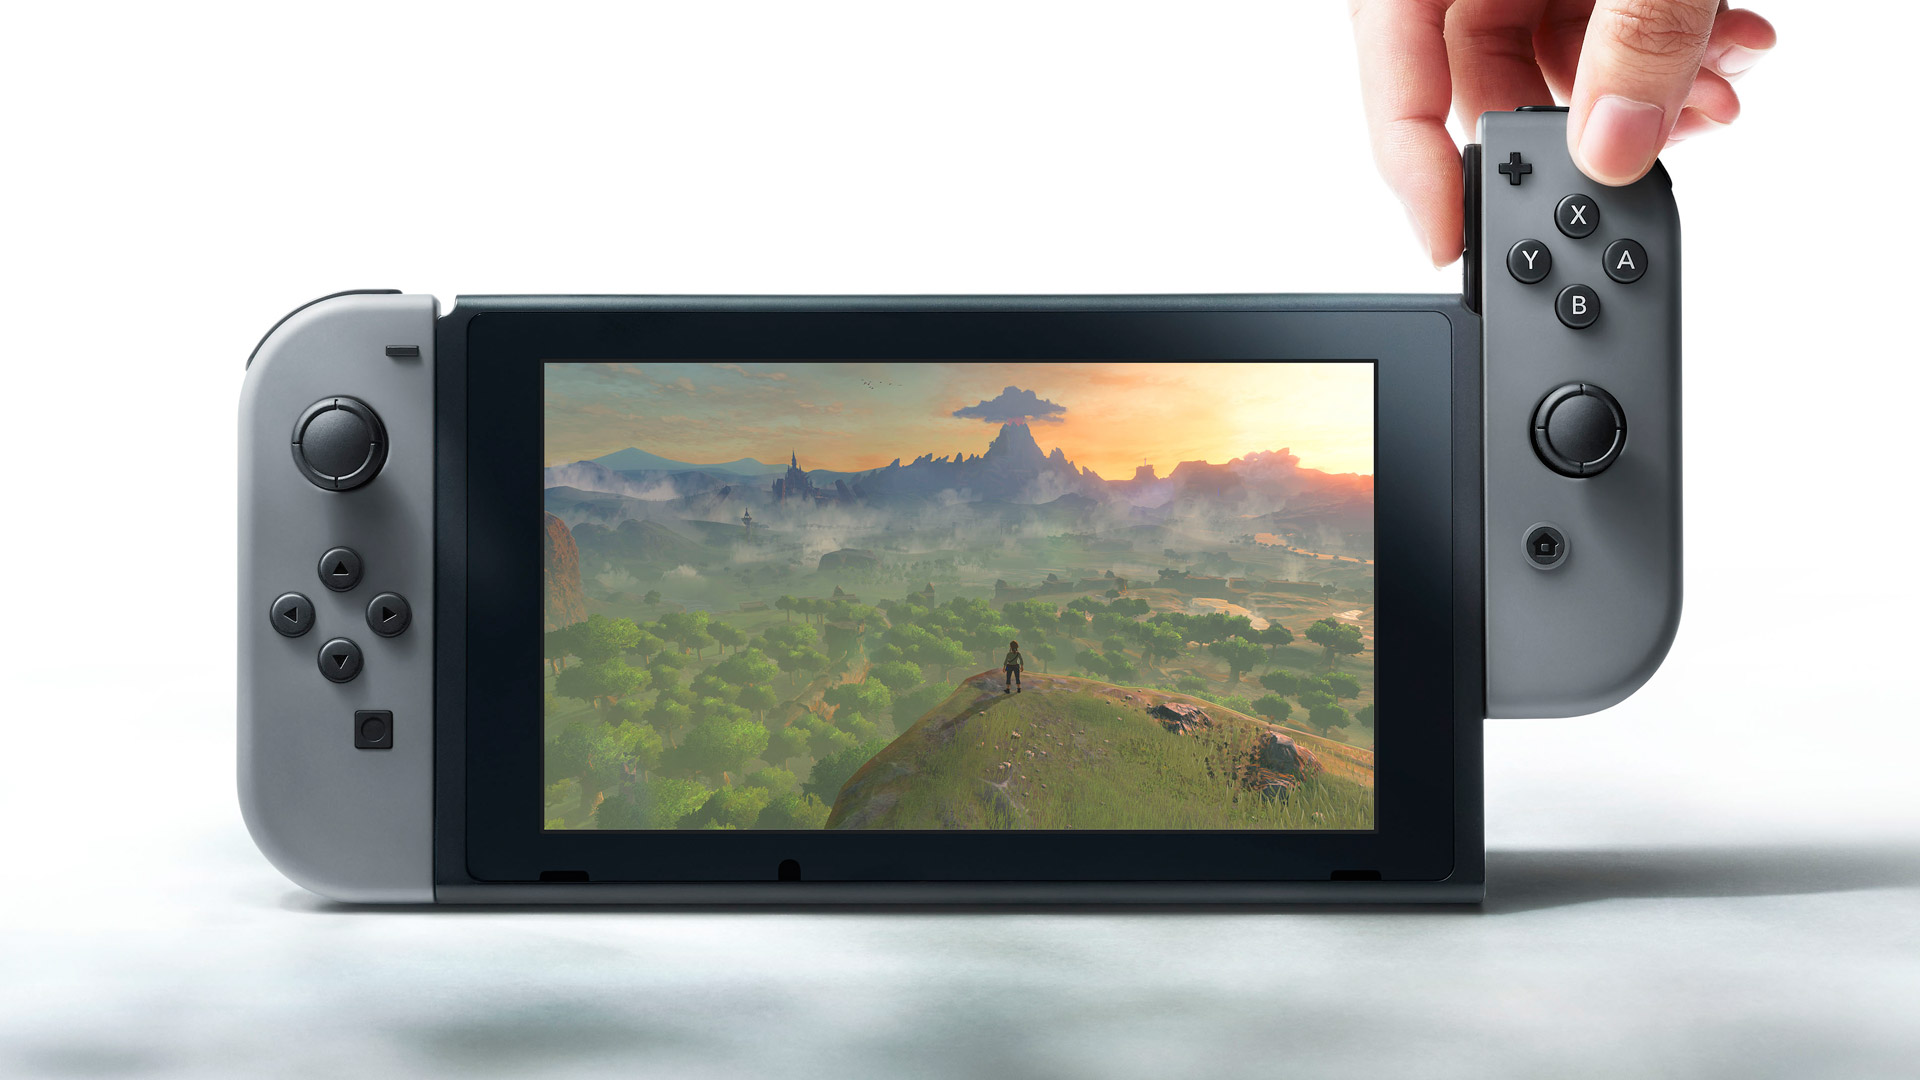 The new Nintendo Switch, which includes detachable controllers, will be released in March 2017. (Image courtesy of polygon.com)